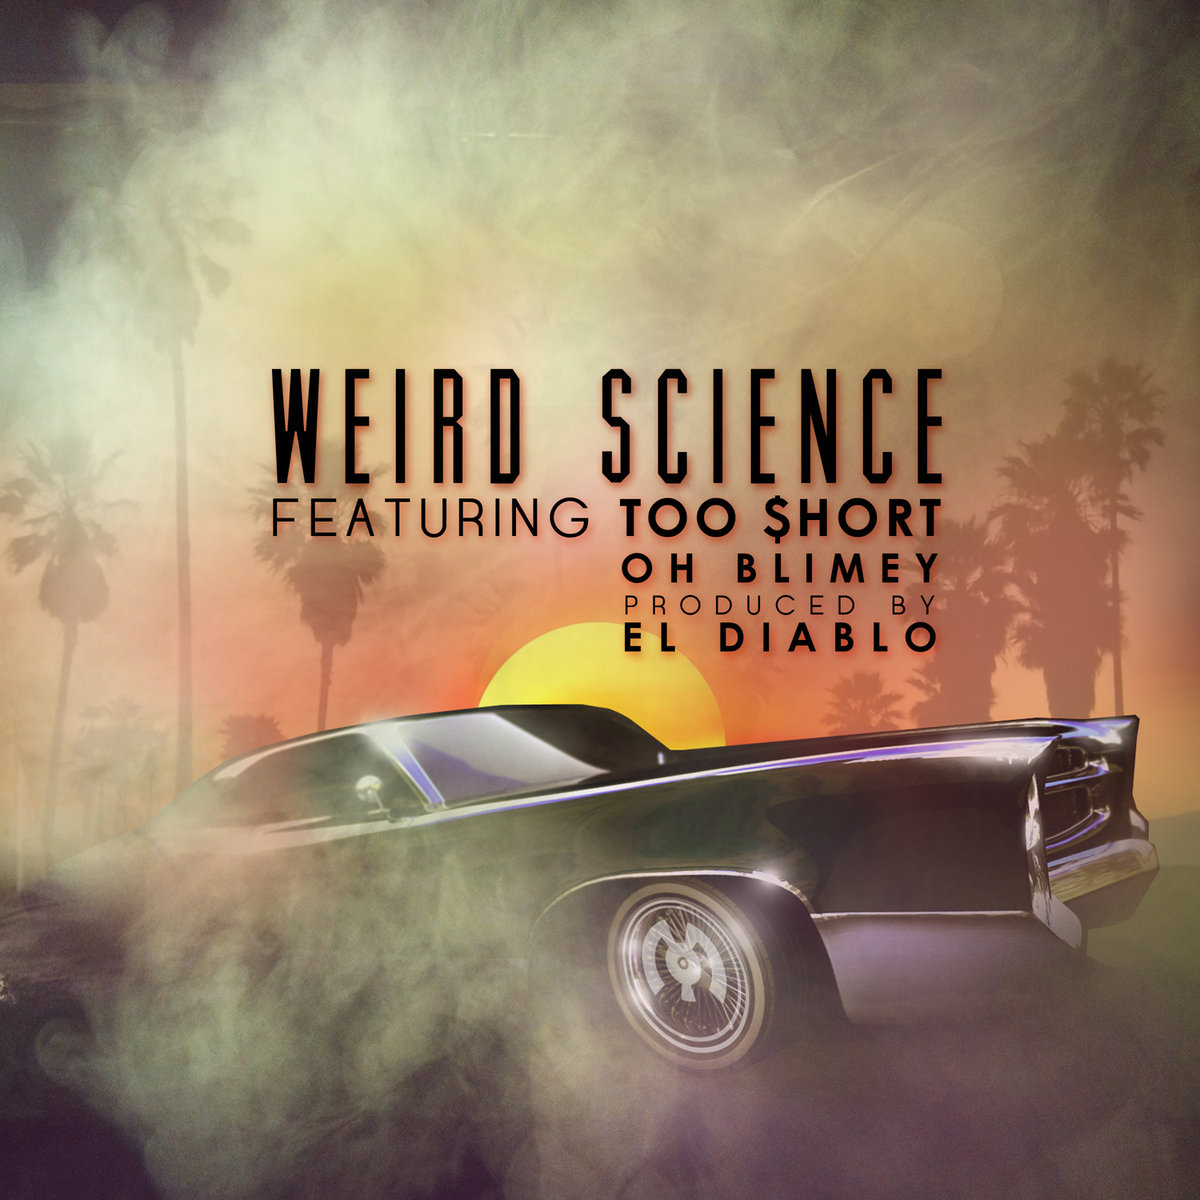 Too $hort, Oh Blimey, El Diablo - Weird Science (Trevor Kelly Remix) @ 'Weird Science' album (electronic, dubstep)